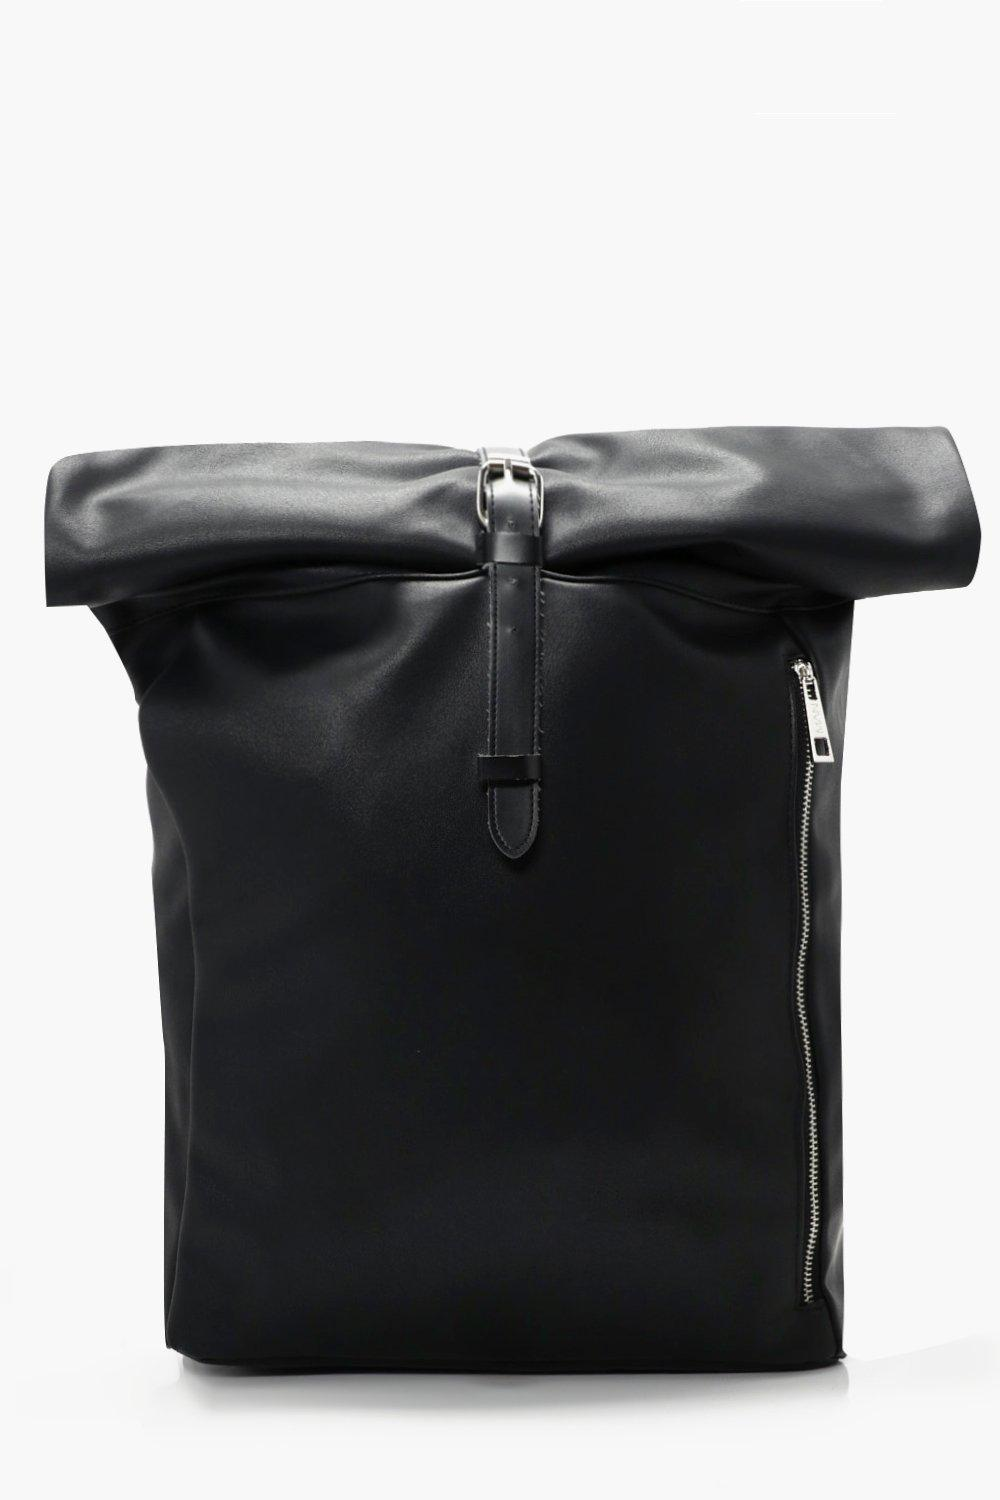 Roll Top Back Pack With Zip Detail - black - PU Ro